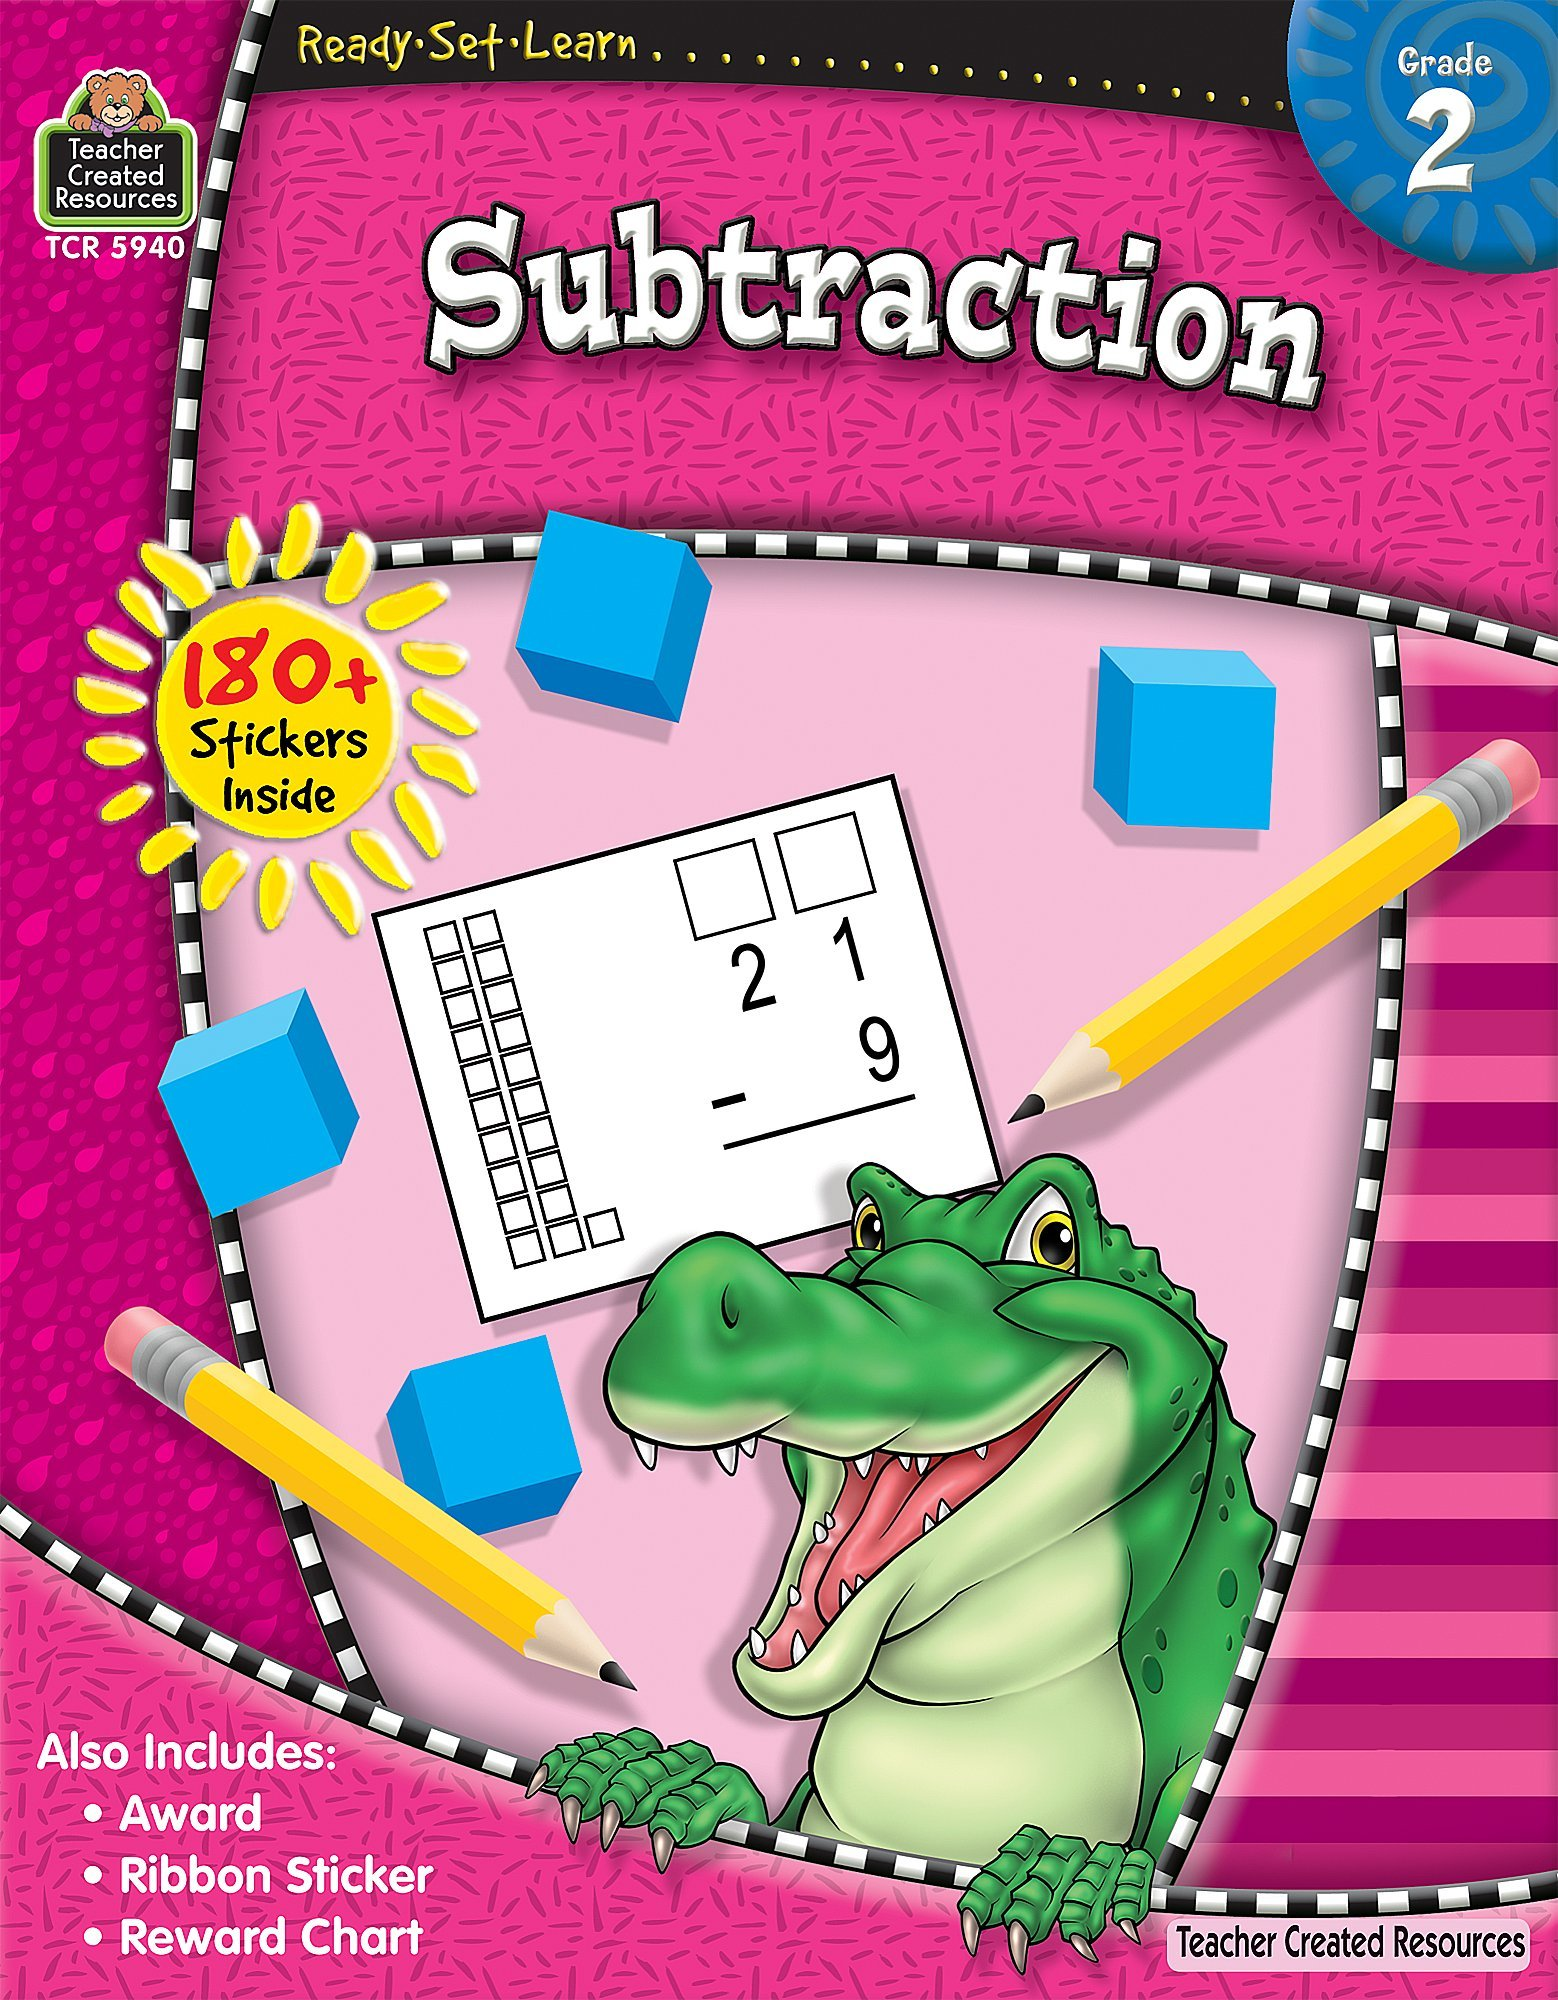 Ready-Set-Learn: Subtraction Grd 2